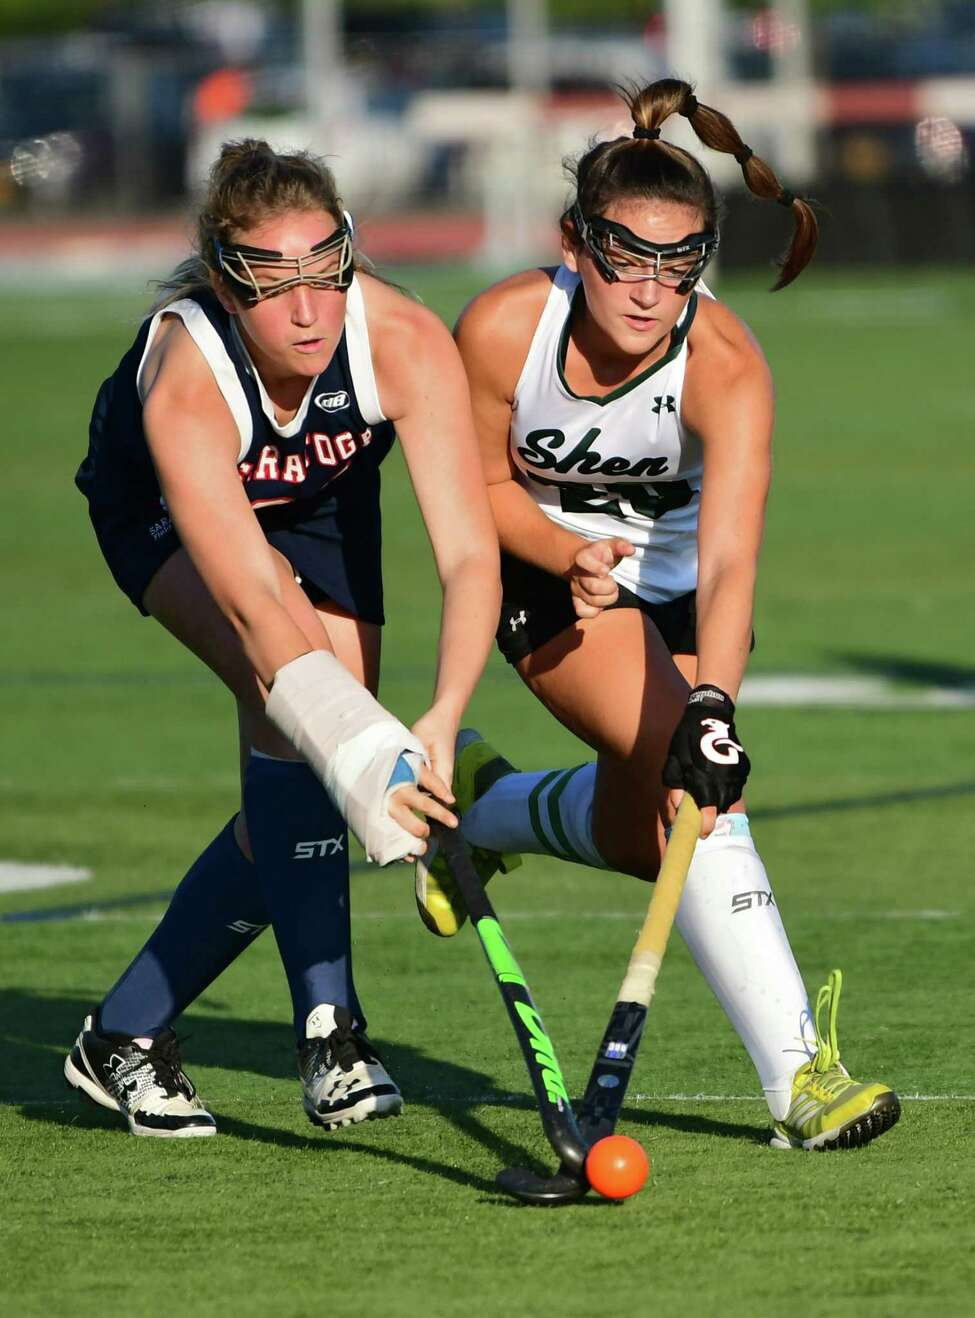 Saratoga's Danielle Geils, left, and Shenendehowa's Grace DeChiro battle for the ball during a field hockey game on Monday, Sept. 9, 2019 in Clifton Park, N.Y. (Lori Van Buren/Times Union)